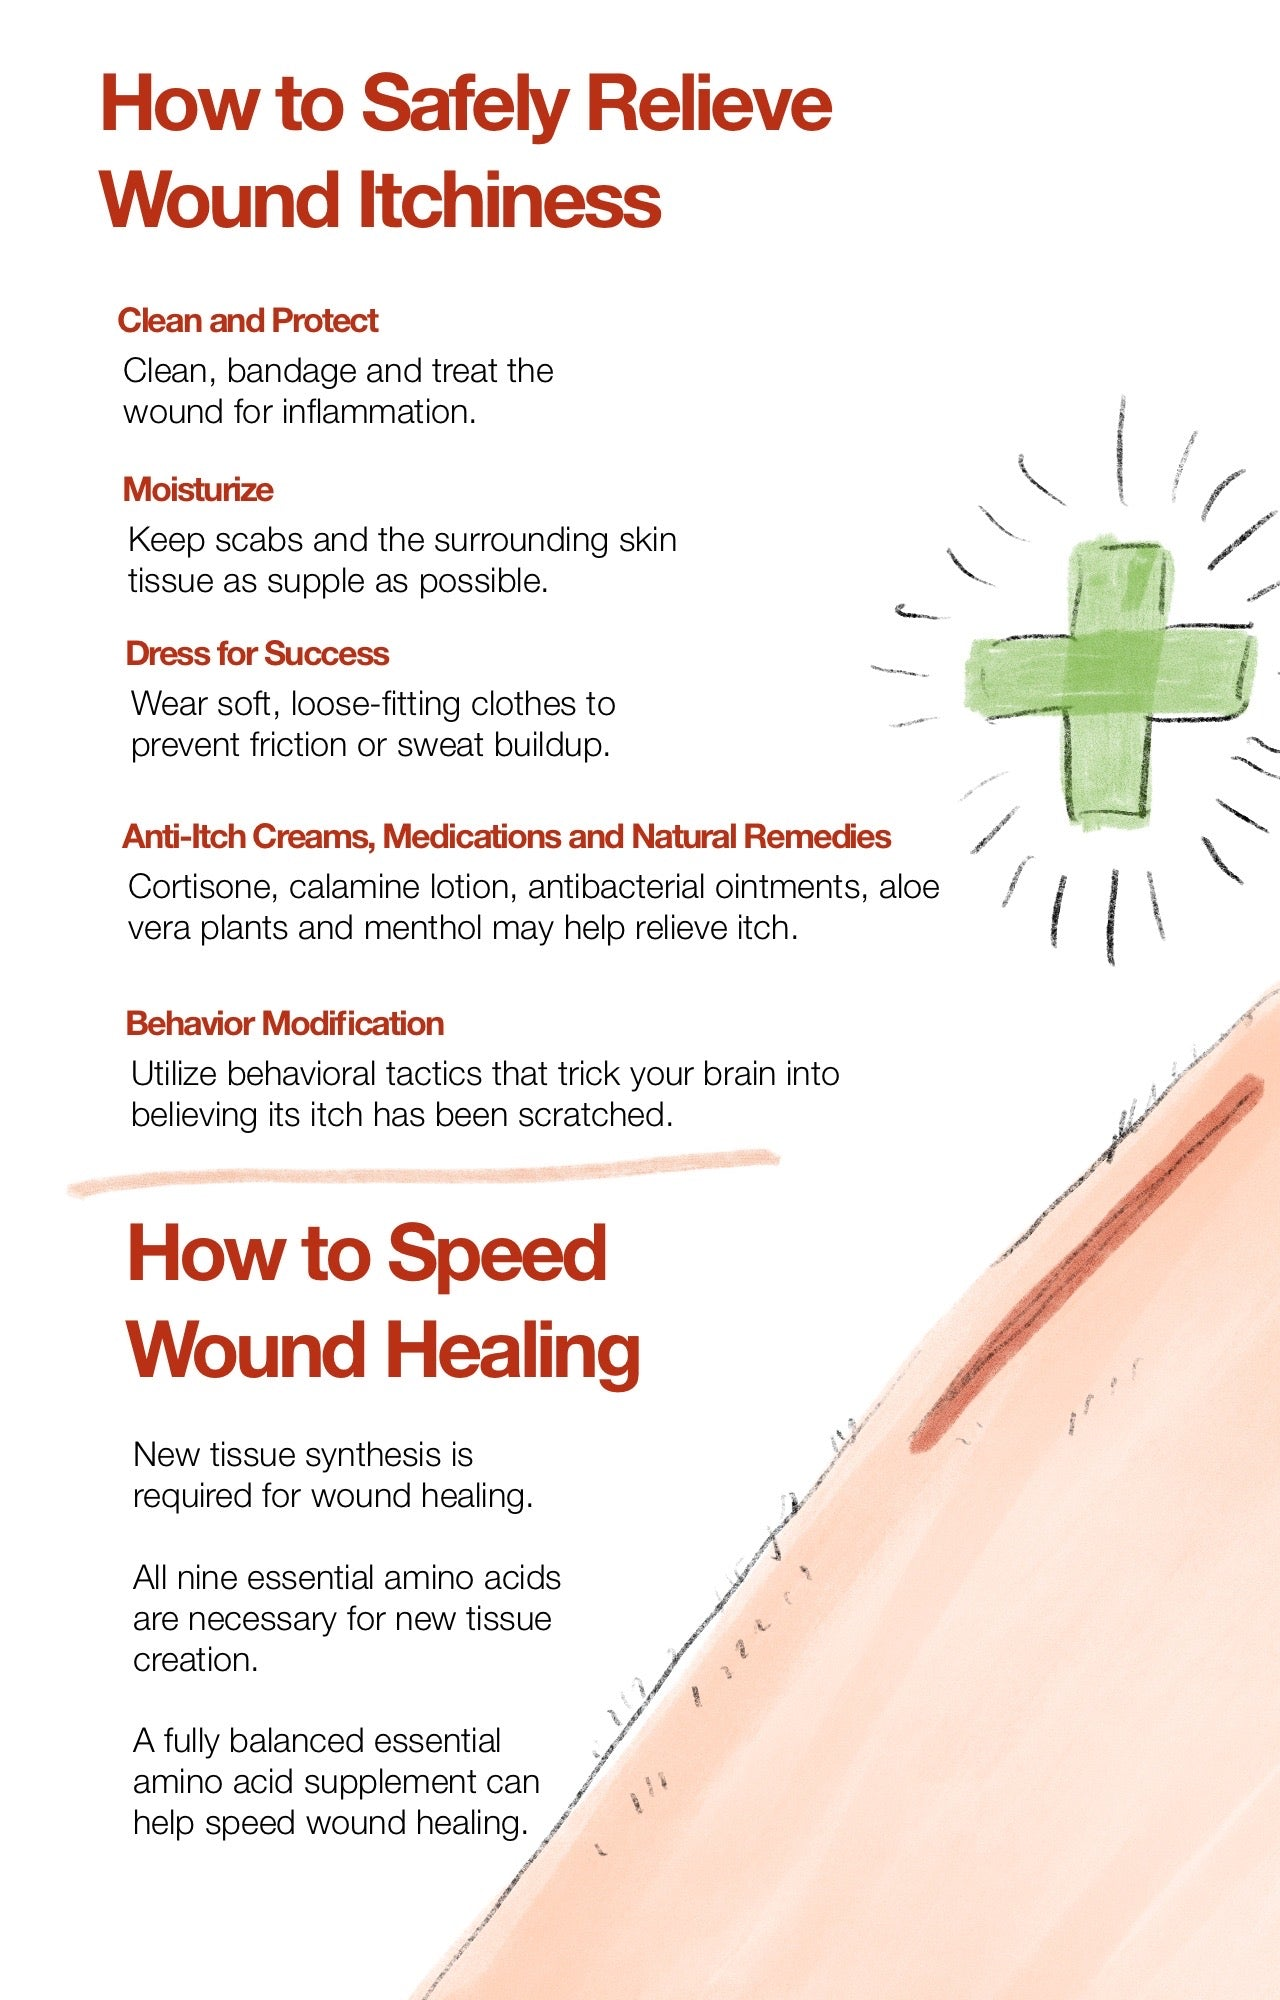 How to Safely Relieve Wound Itchiness